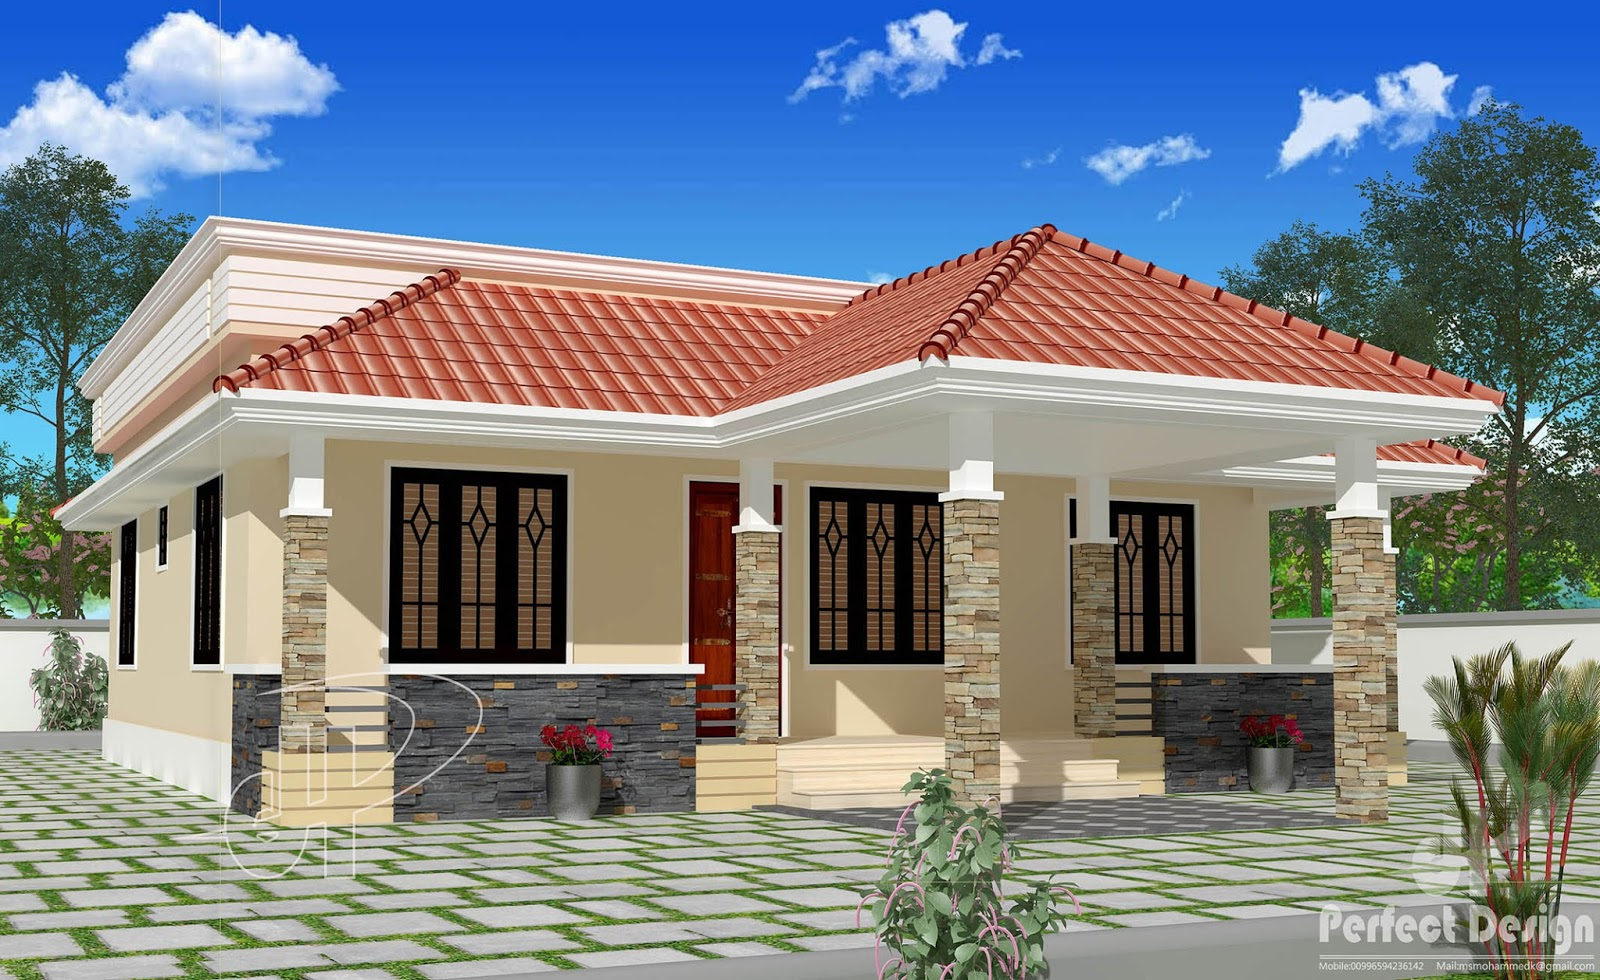 Build your dream one story home with these 12 beautiful Latest simple house design